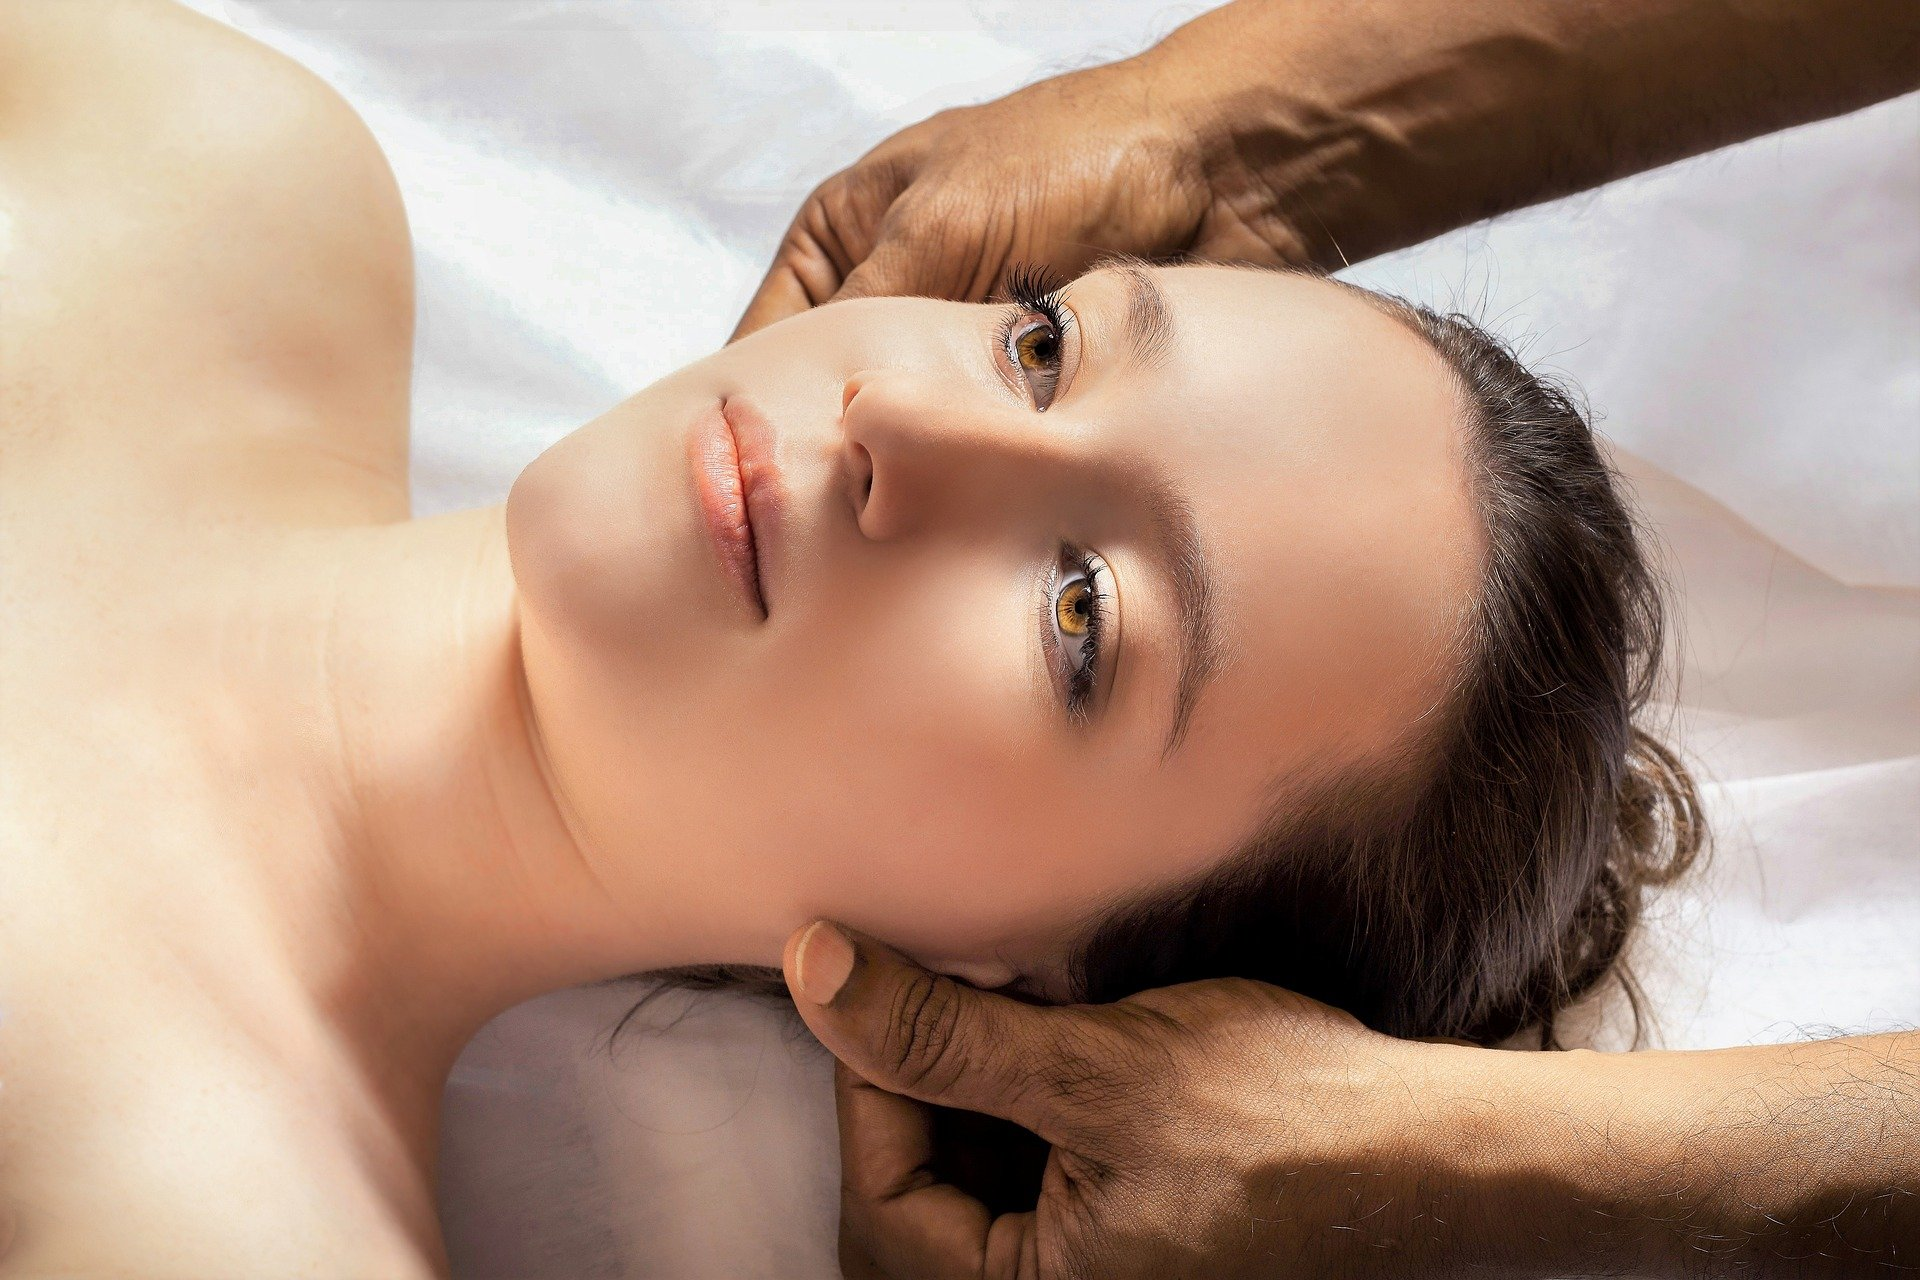 Woman lay on her back while a man carries out an Indian head massage on her. For use on the Indian Head Massage Course page.